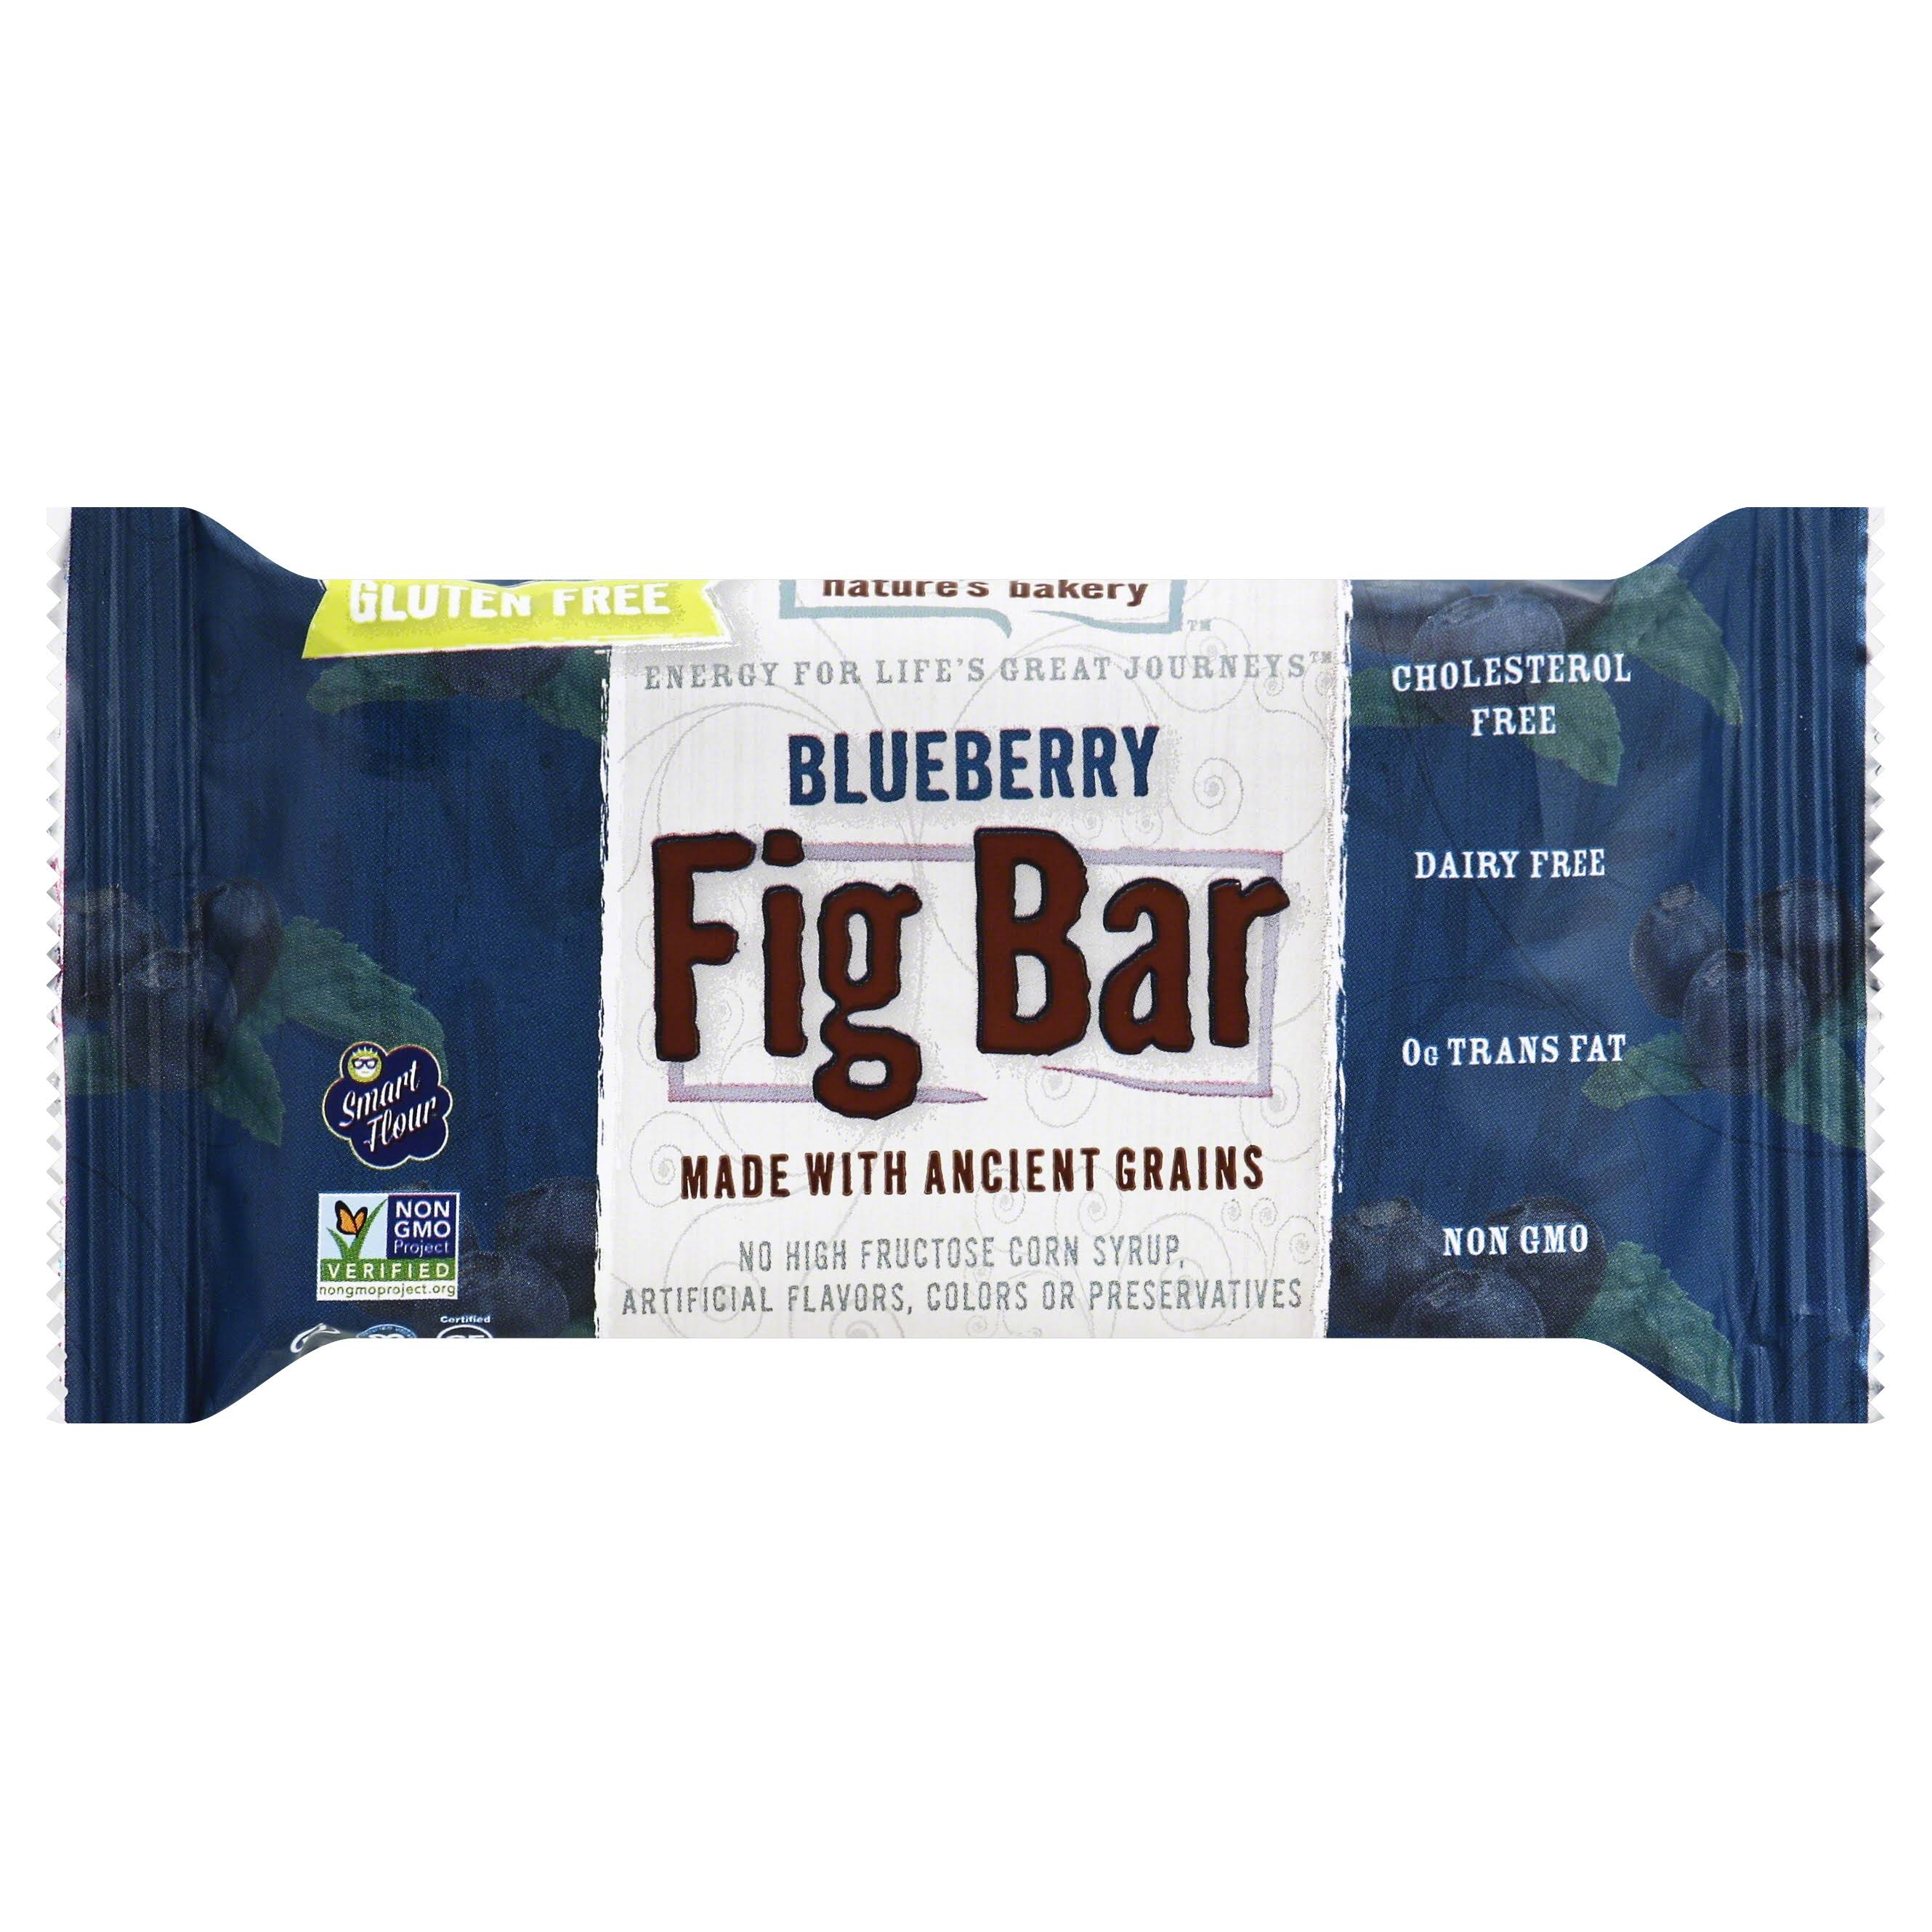 Natures Bakery Gluten Free Fig Bar - Blueberry, 60ml